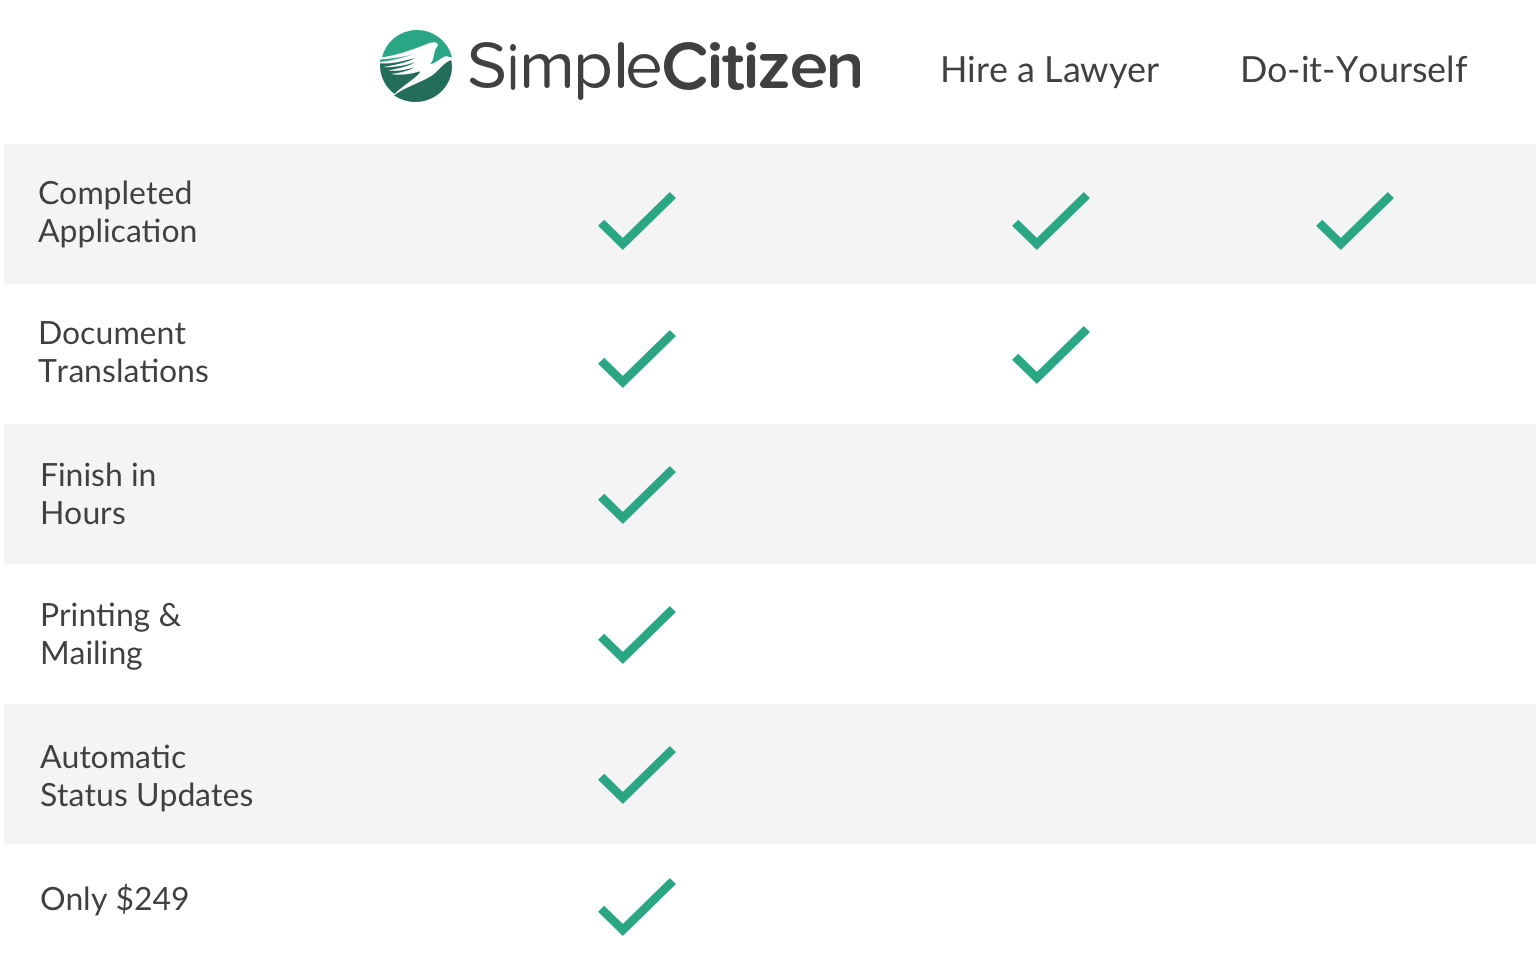 The ultimate guide on how to get a green card simplecitizen did you know if you use simplecitizen and uscis rejects your application we will refund you 100 percent of the government filing fees falaconquin